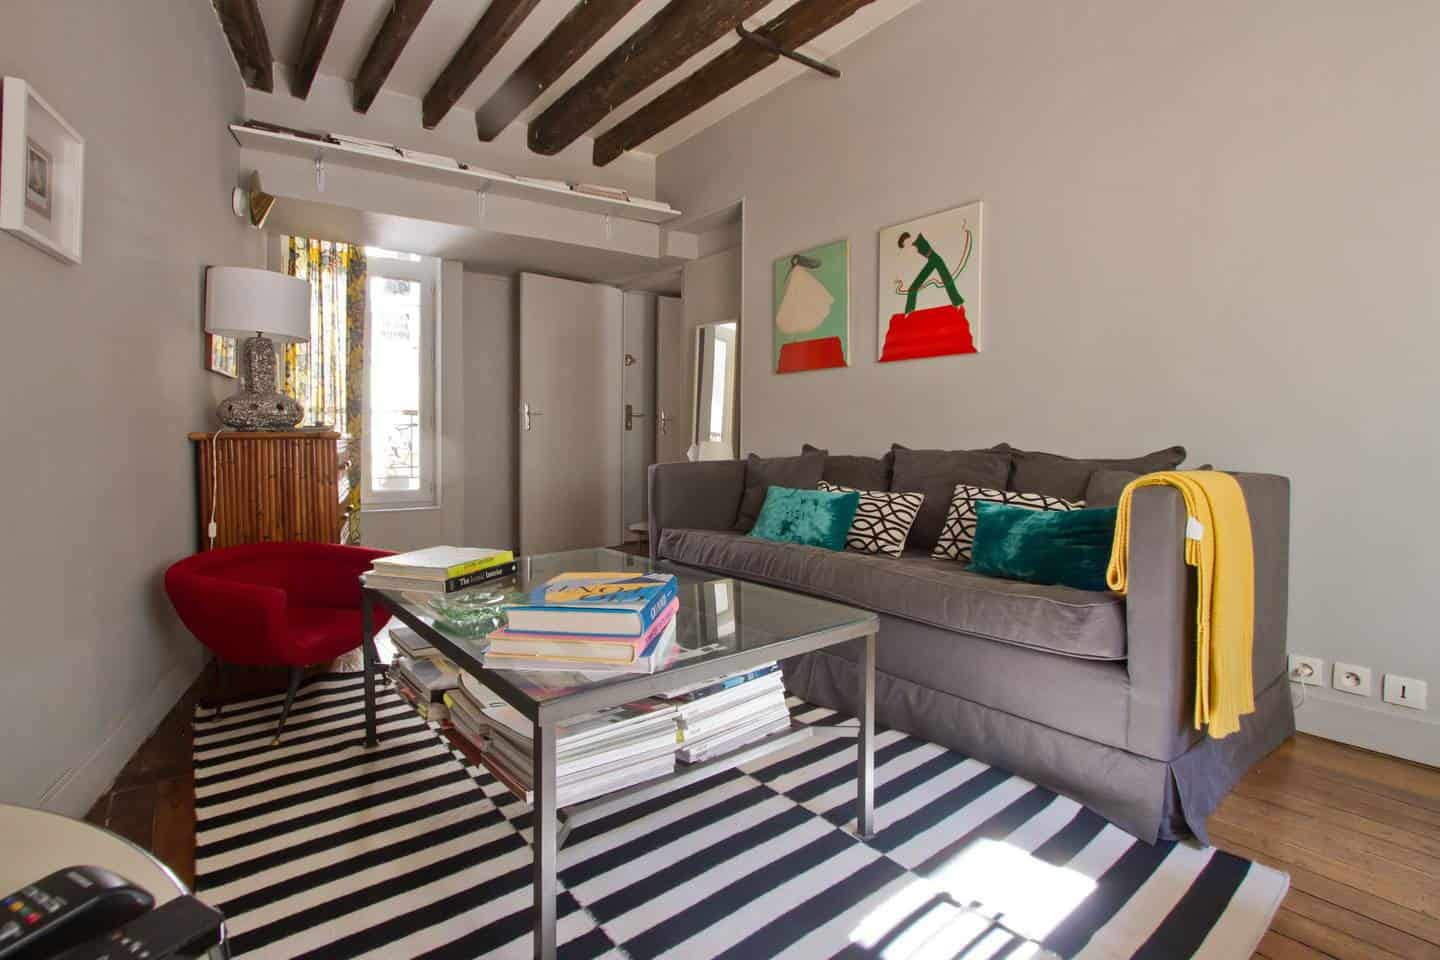 Wow! This Airbnb Paris listing near Notre Dame is dreamy. You have to see the pictures!